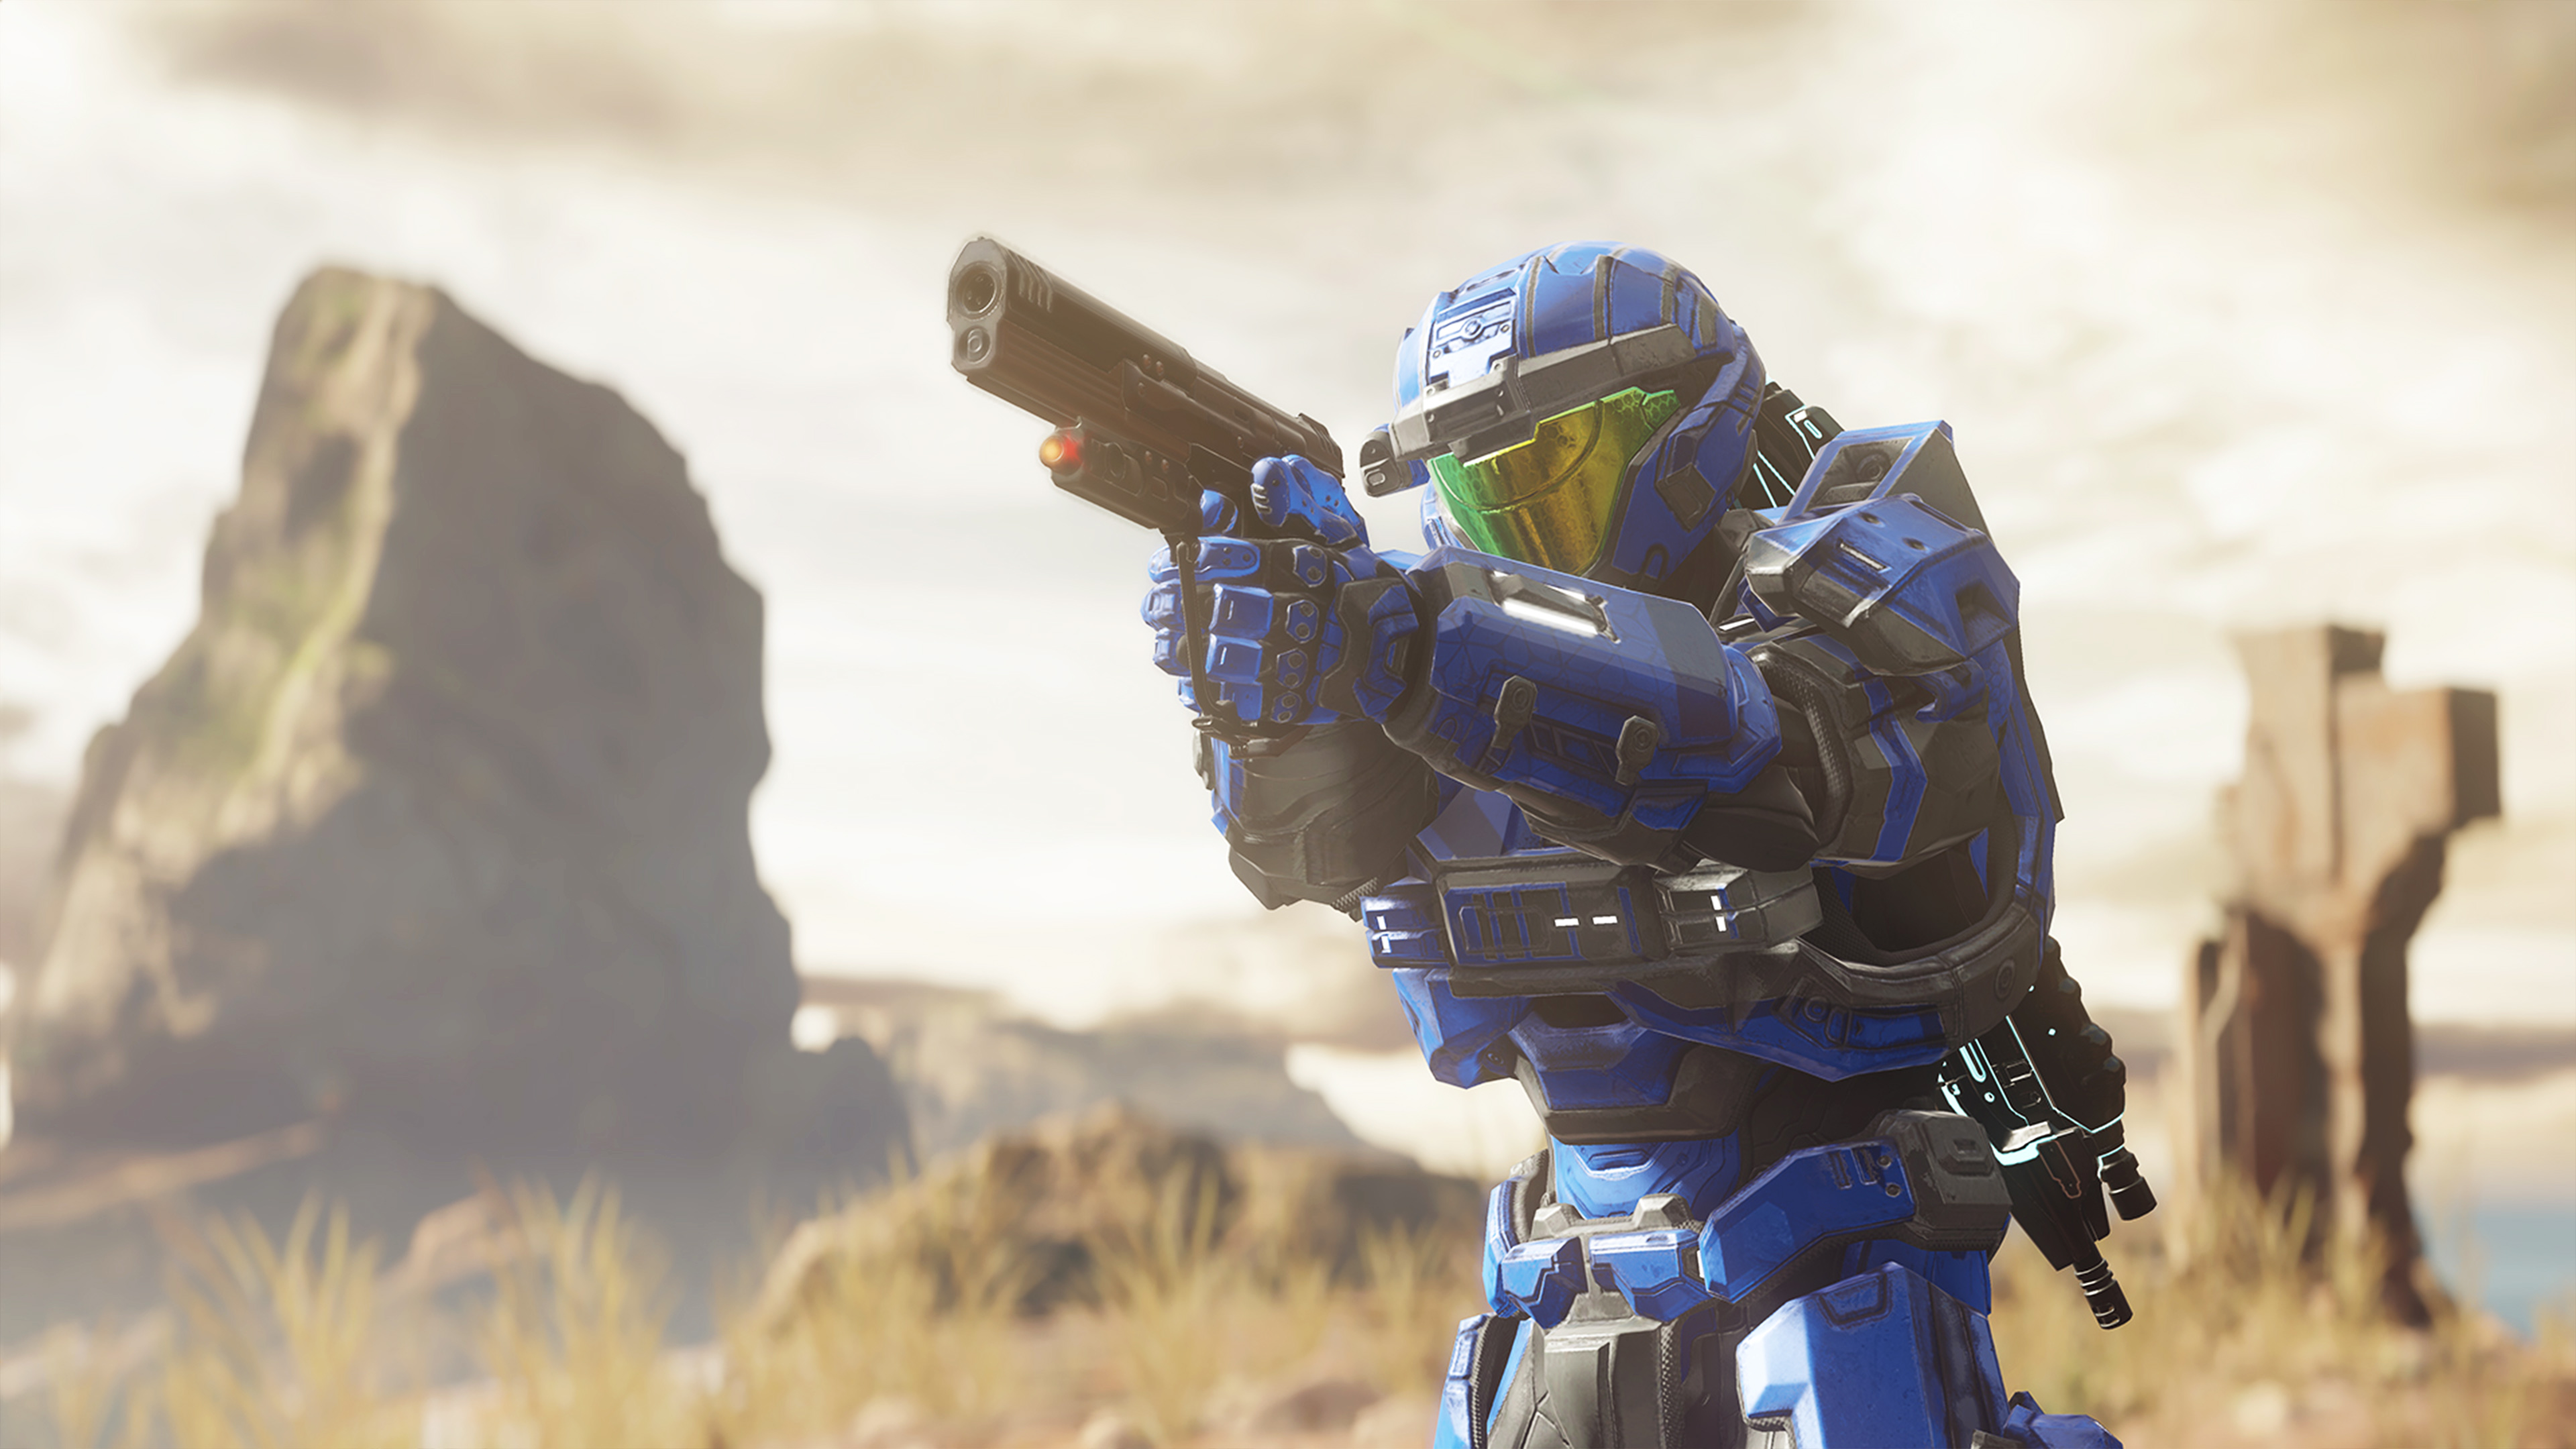 Halo 5 Forge will be coming to PC on September 8th